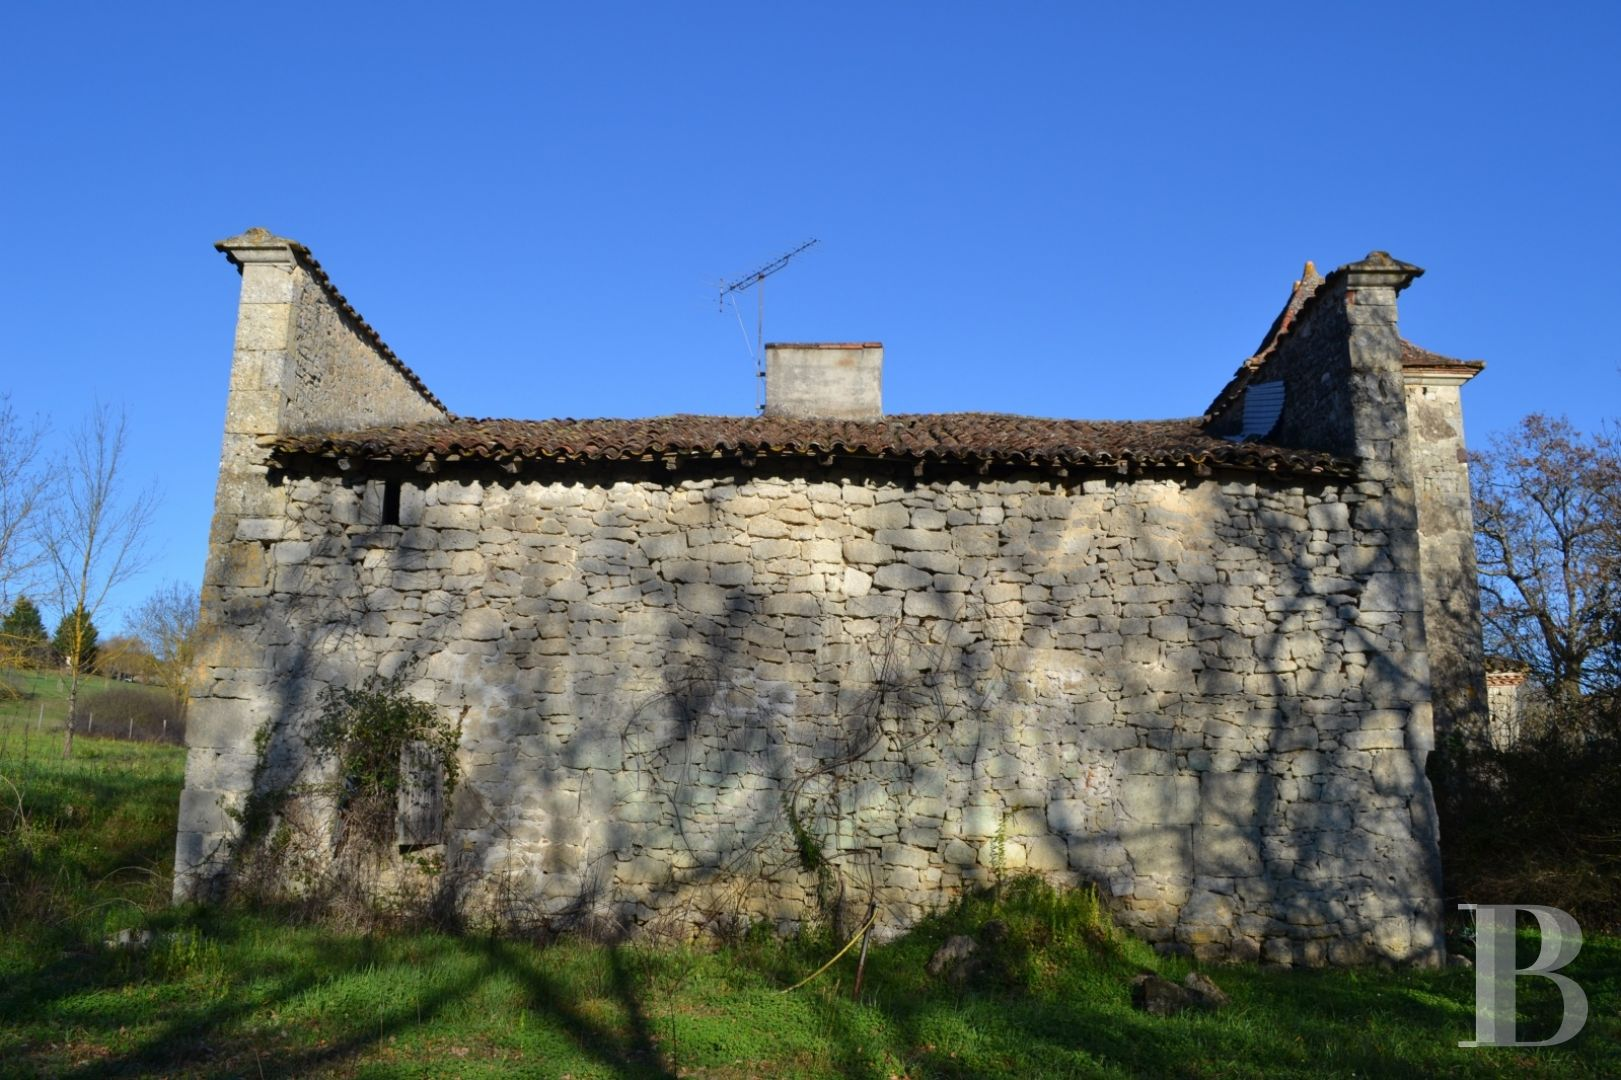 property for sale France aquitaine stronghold house - 8 zoom